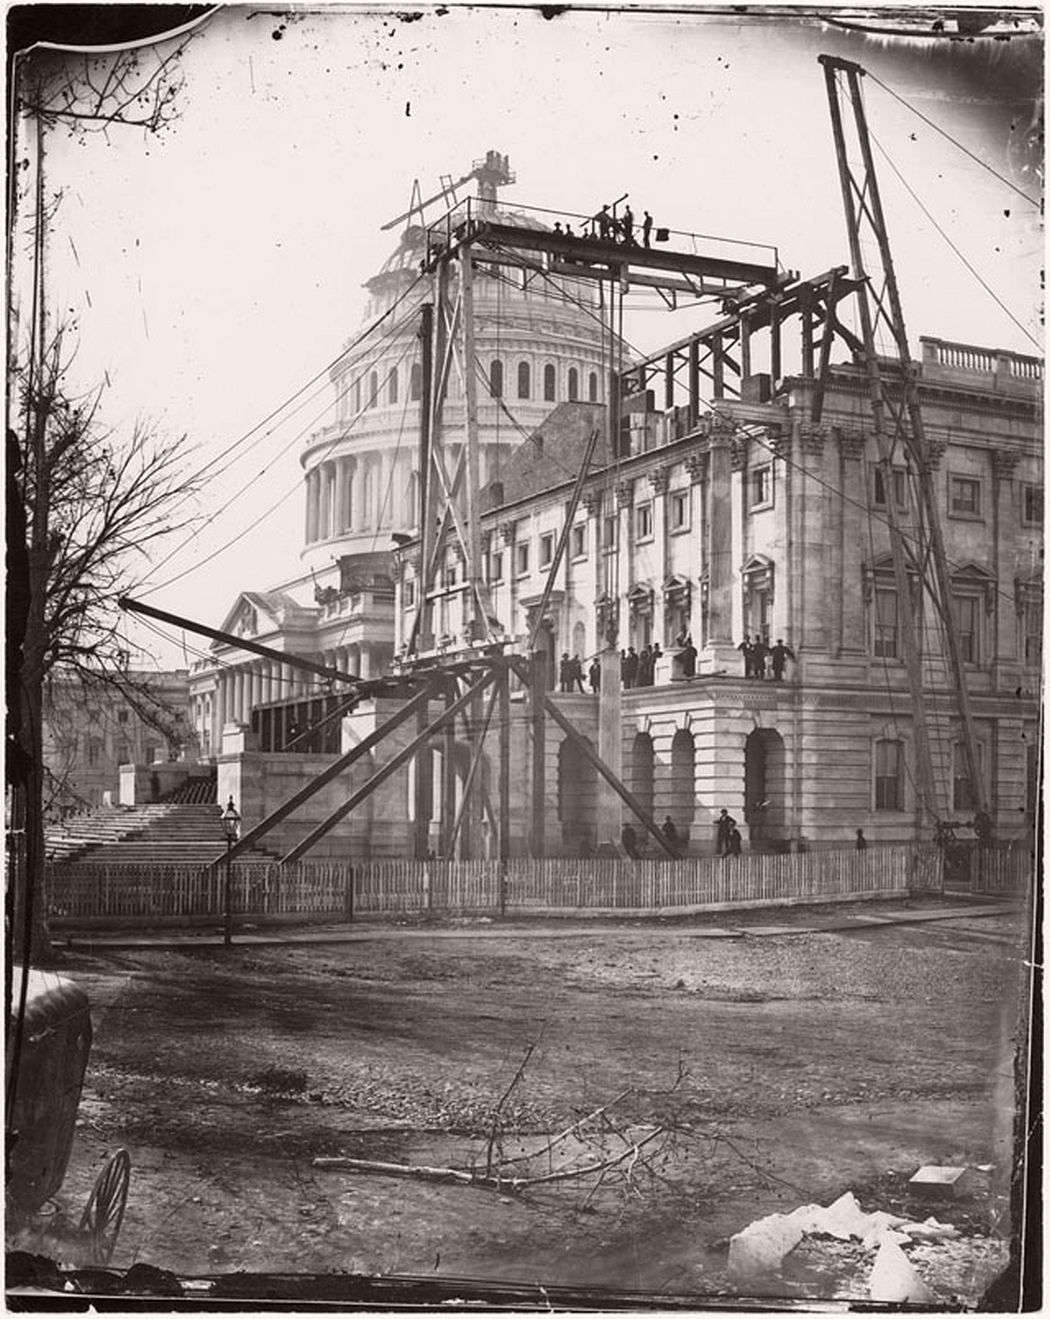 The Capitol building under construction in Washington, DC, ca. 1863